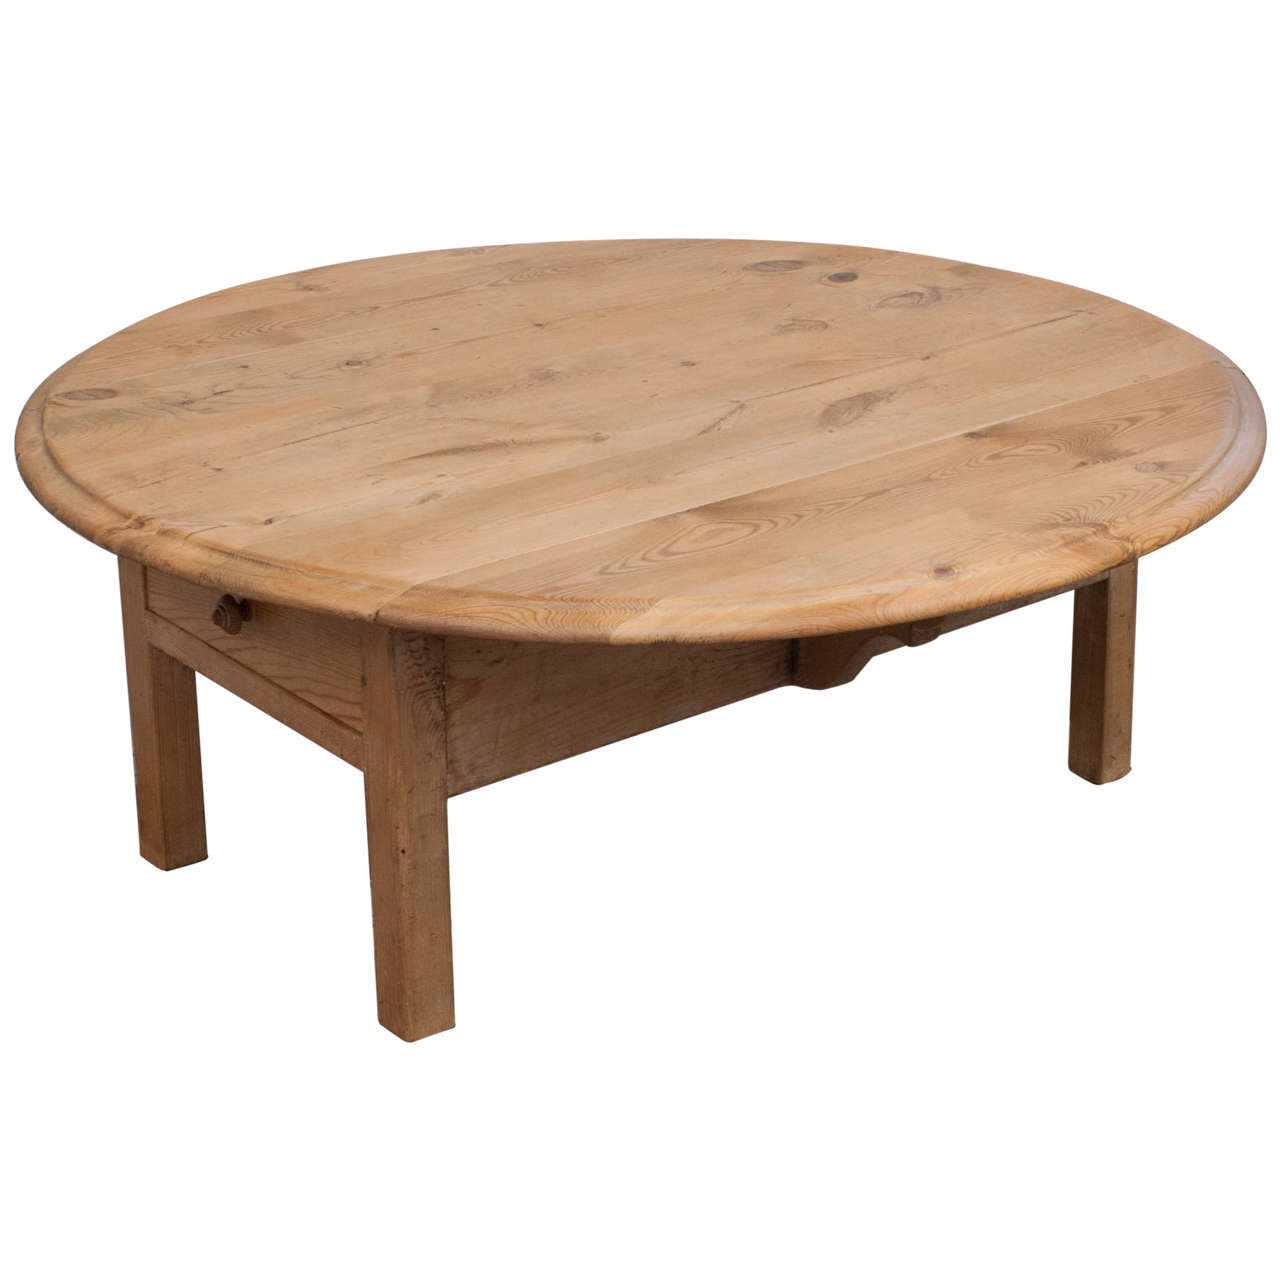 Pine Drop-Leaf Coffee Table 1 - Pine Drop-Leaf Coffee Table At 1stdibs